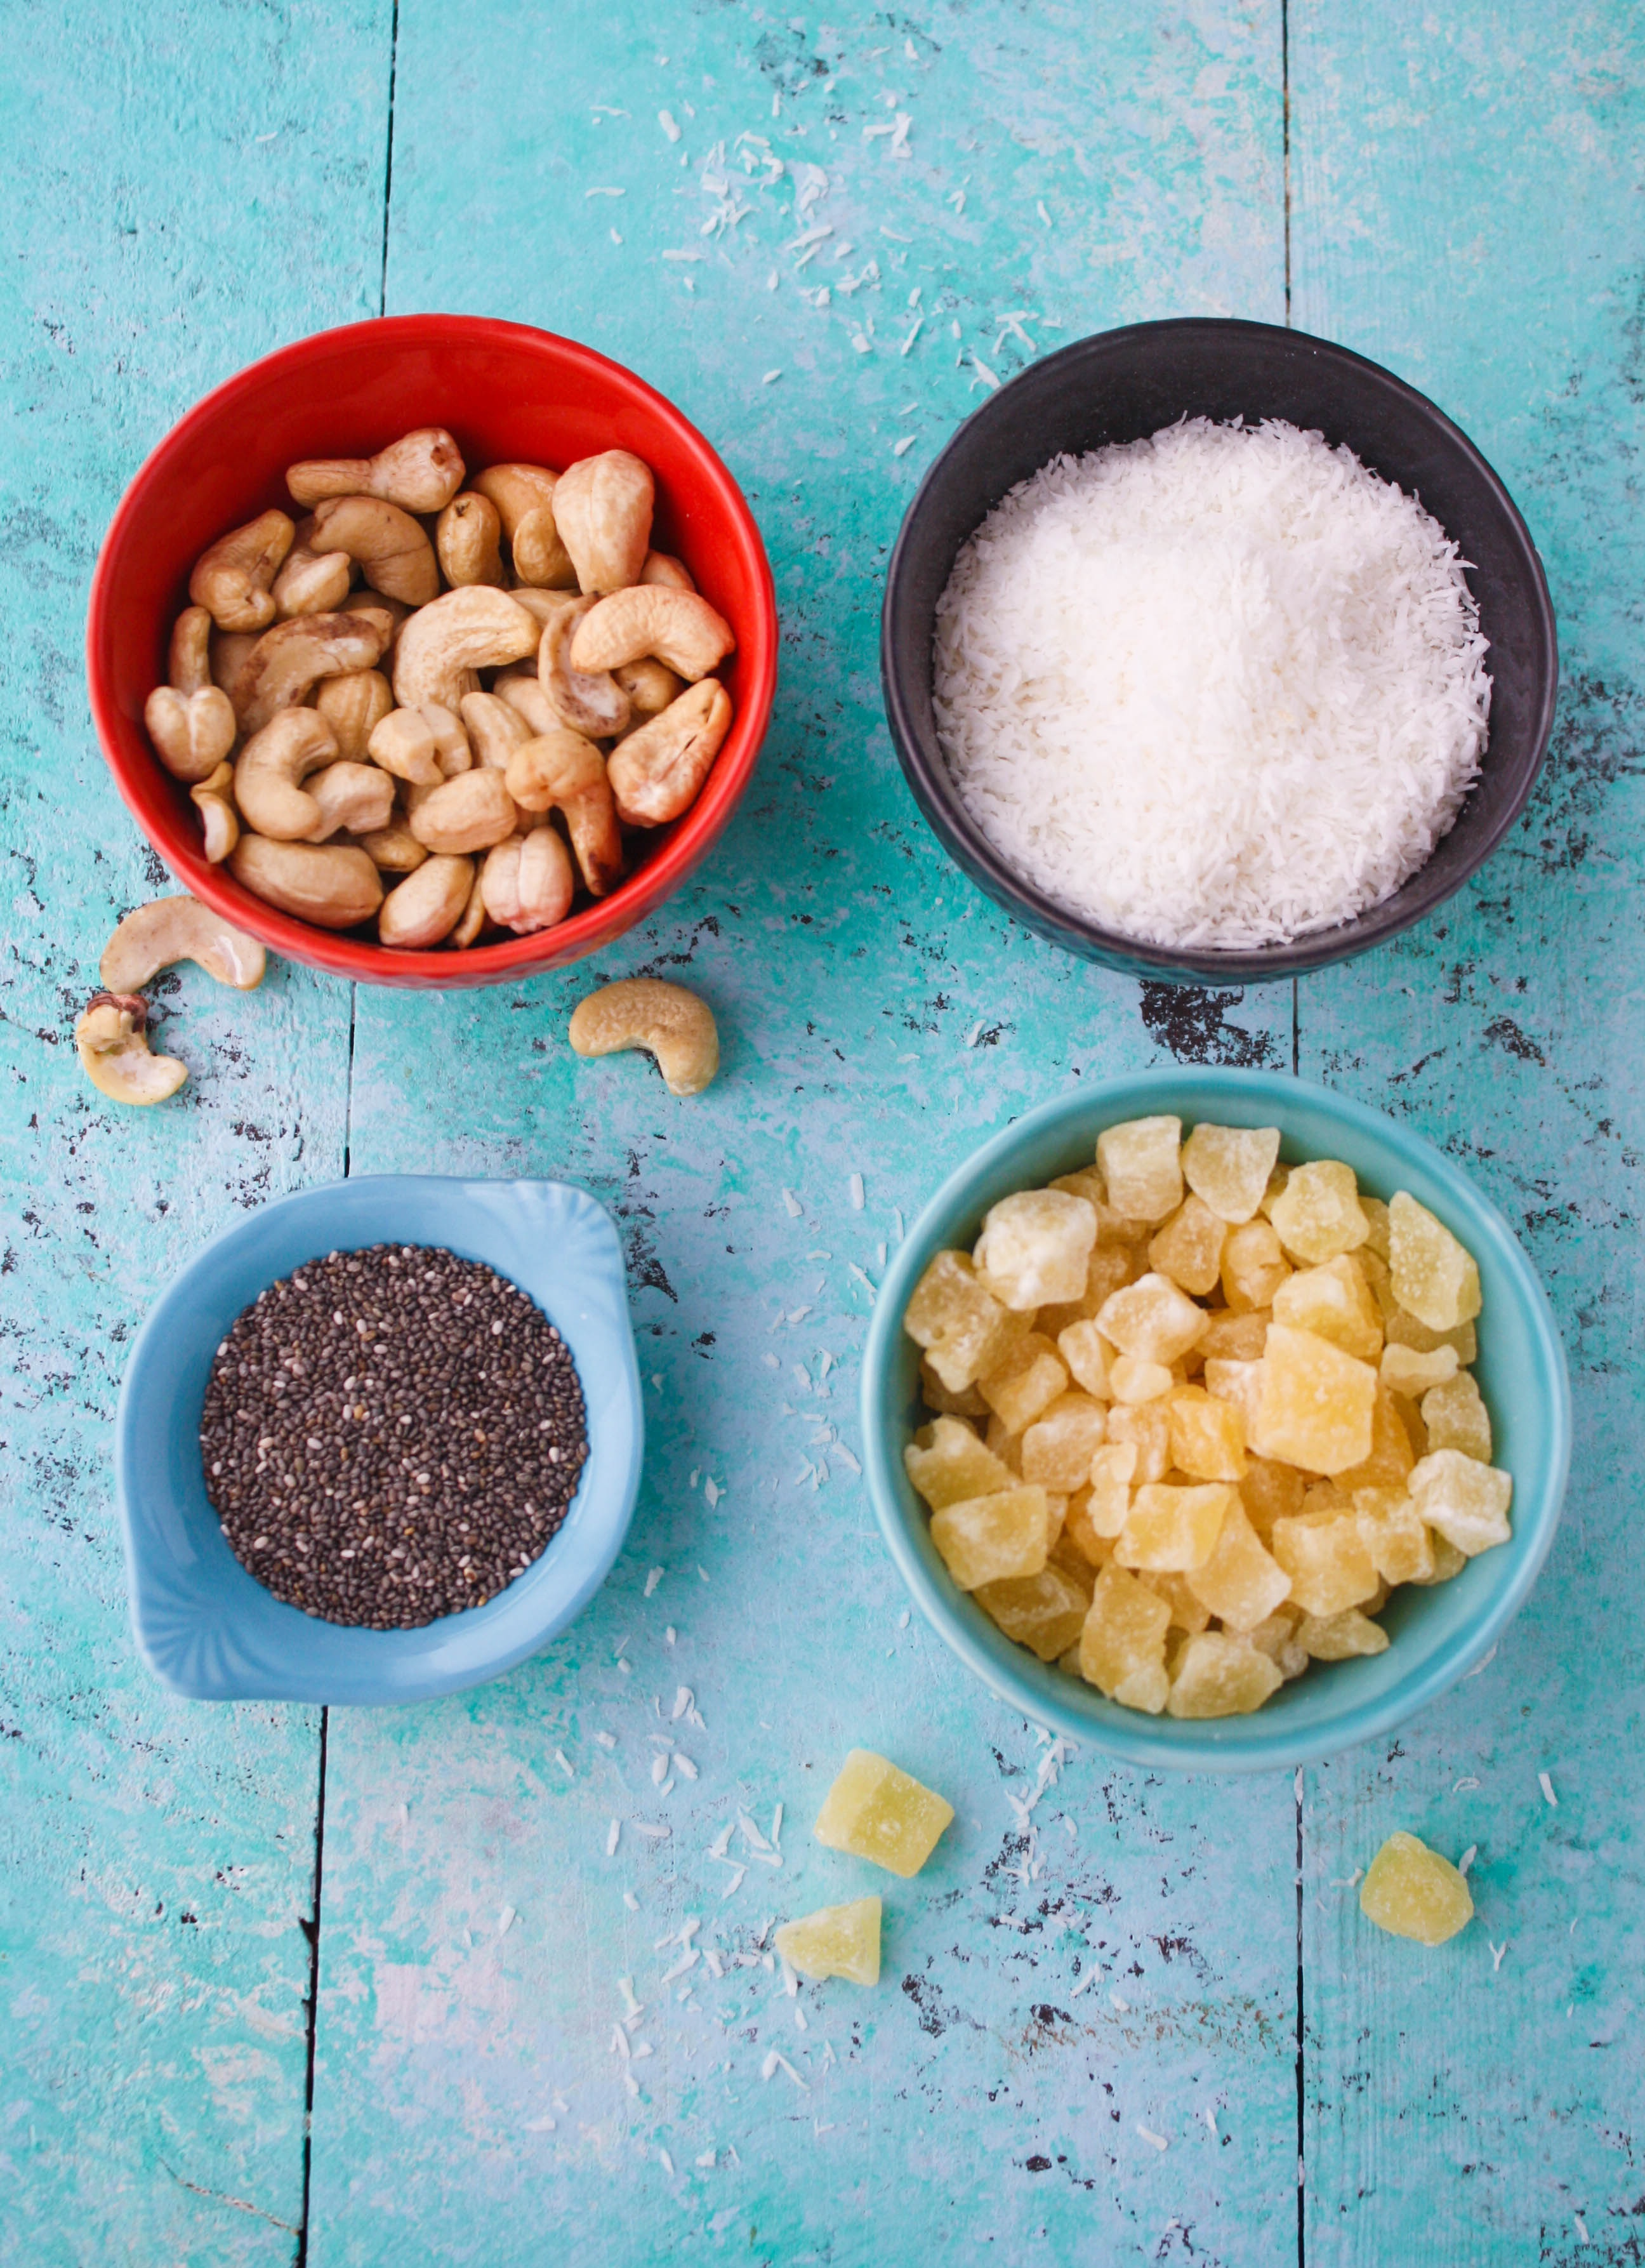 No bake coconut, cashew, and pineapple energy bites are fun and tasty for snacking! You'll love these no bake energy bites any time of day.